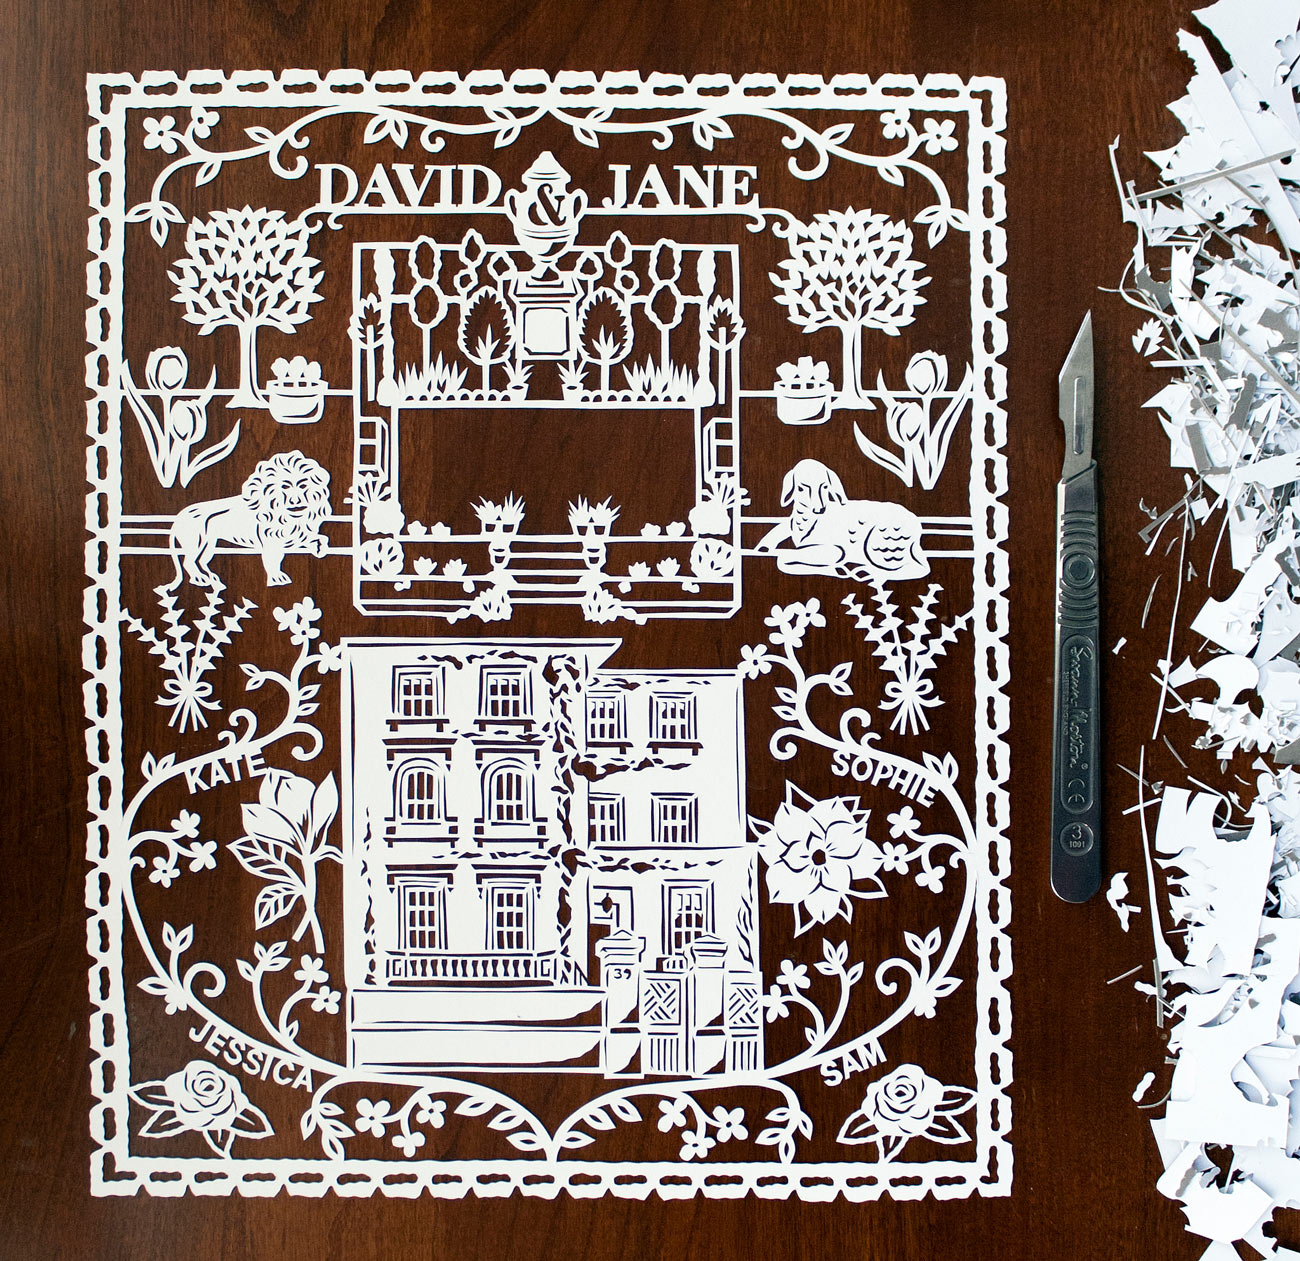 papercut illustration of house and garden with flowers